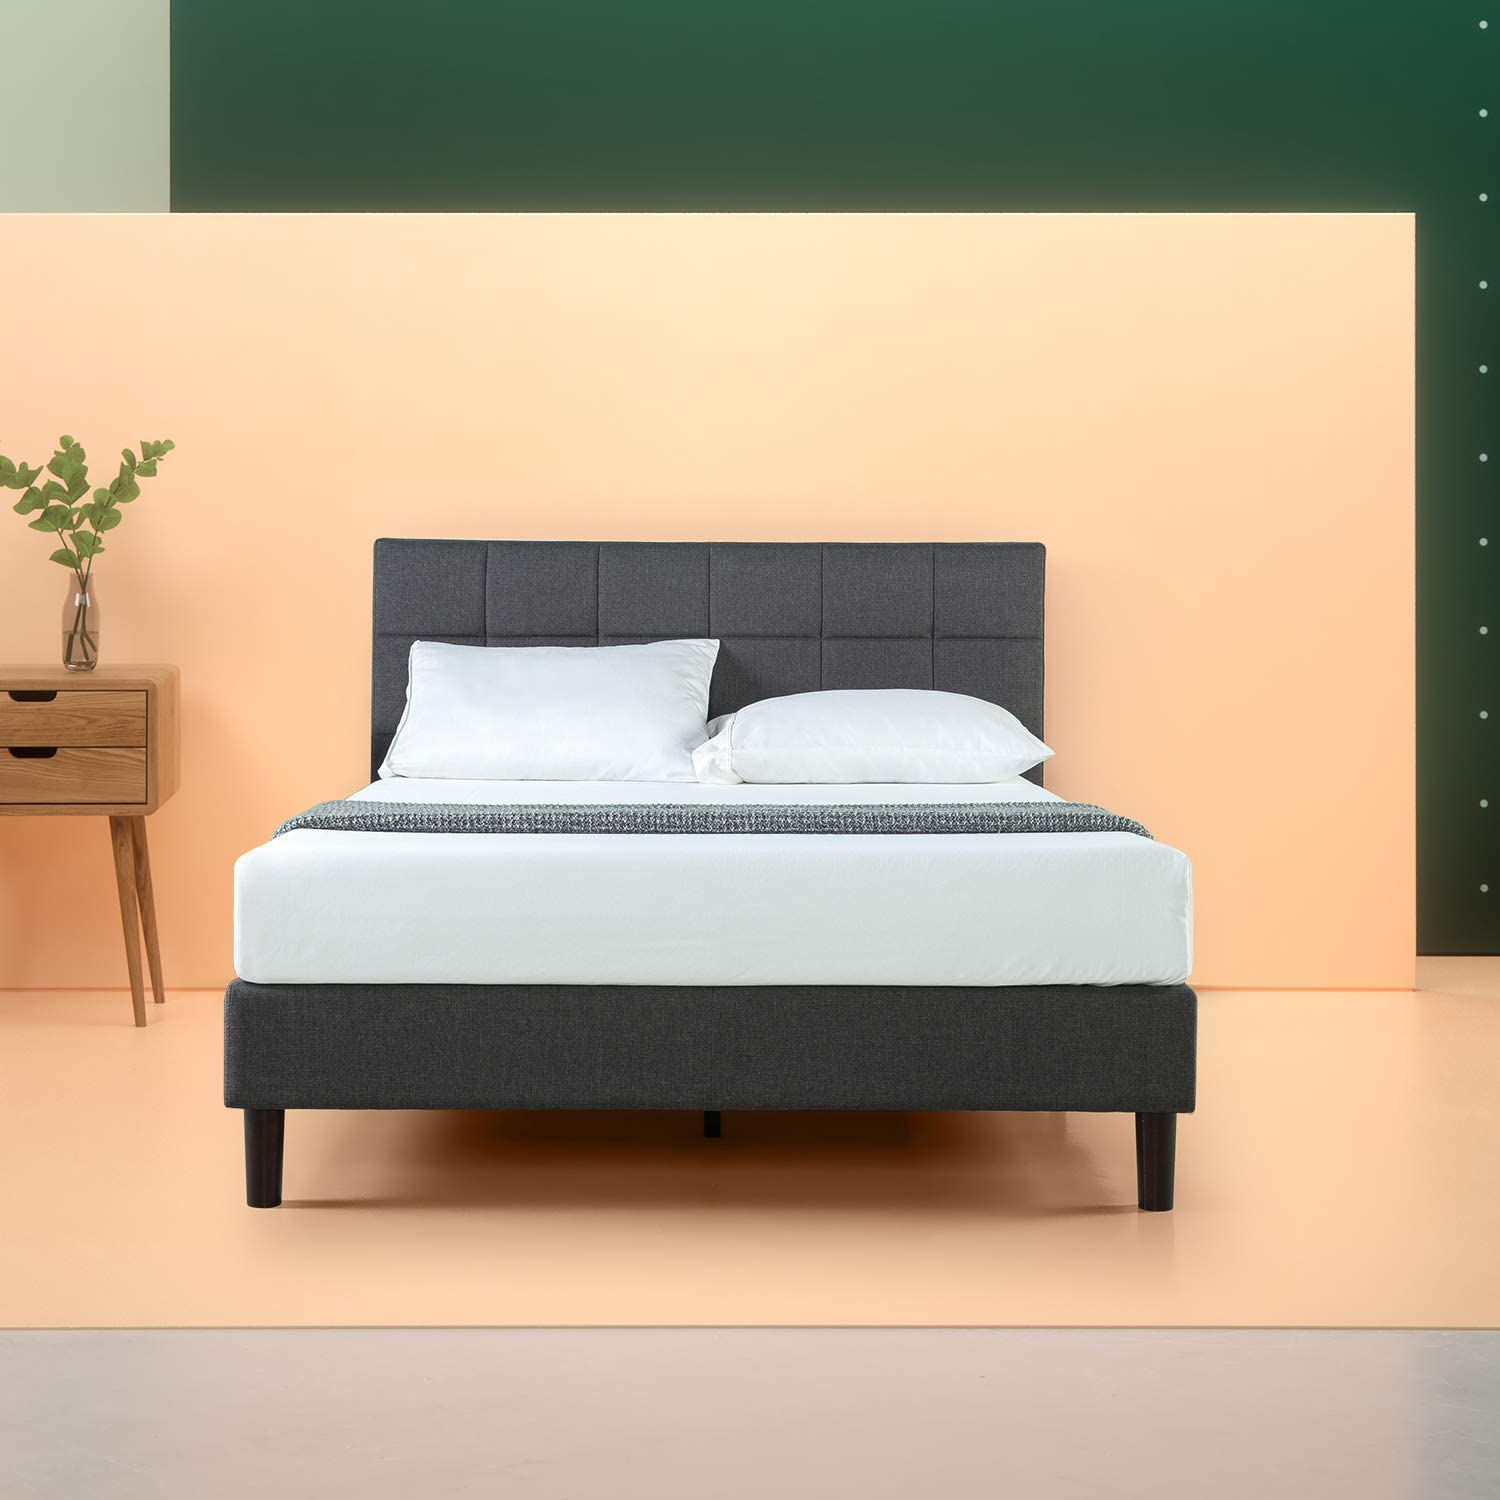 Zinus Upholstered Square Stitched Platform Bed with Wooden Slats, Twin Renewed